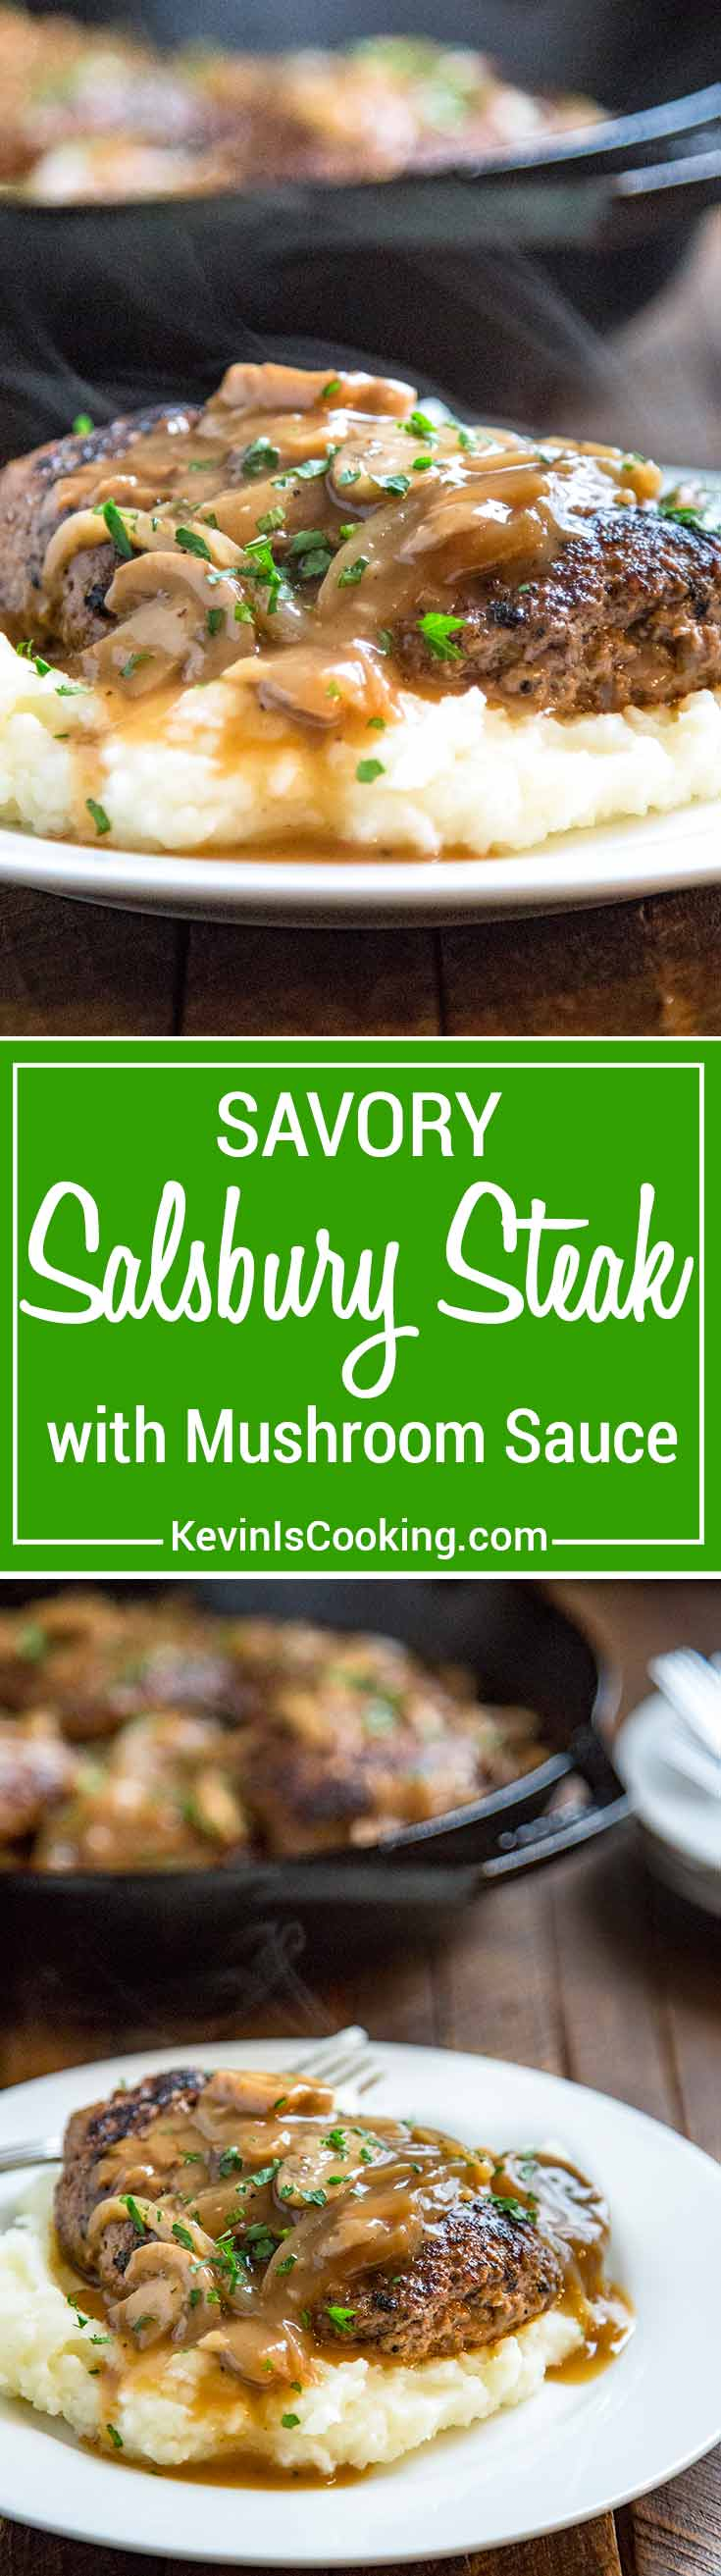 This Salisbury Steak with Mushroom Gravy is a great from scratch recipe straight from one of mom's archive recipe cards. A savory salisbury steak dinner with an onion, mushroom gravy that is perfect served over mashed potatoes for comfort food goodness!